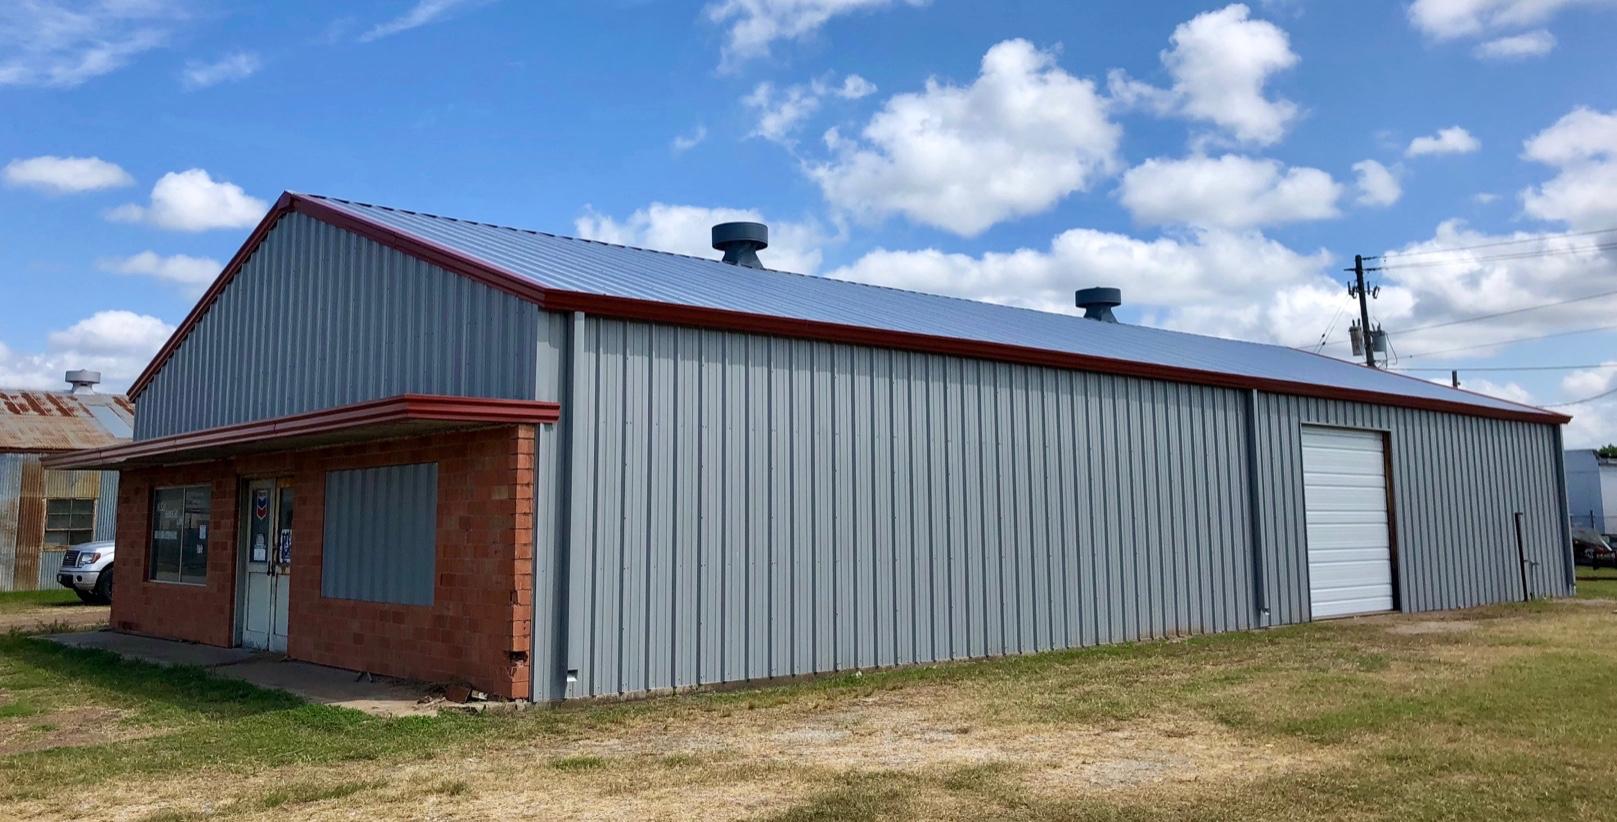 Looks like new. Rusted metal roof replacement, metal building wall panel replacement. Framed out and installed new overhead door.